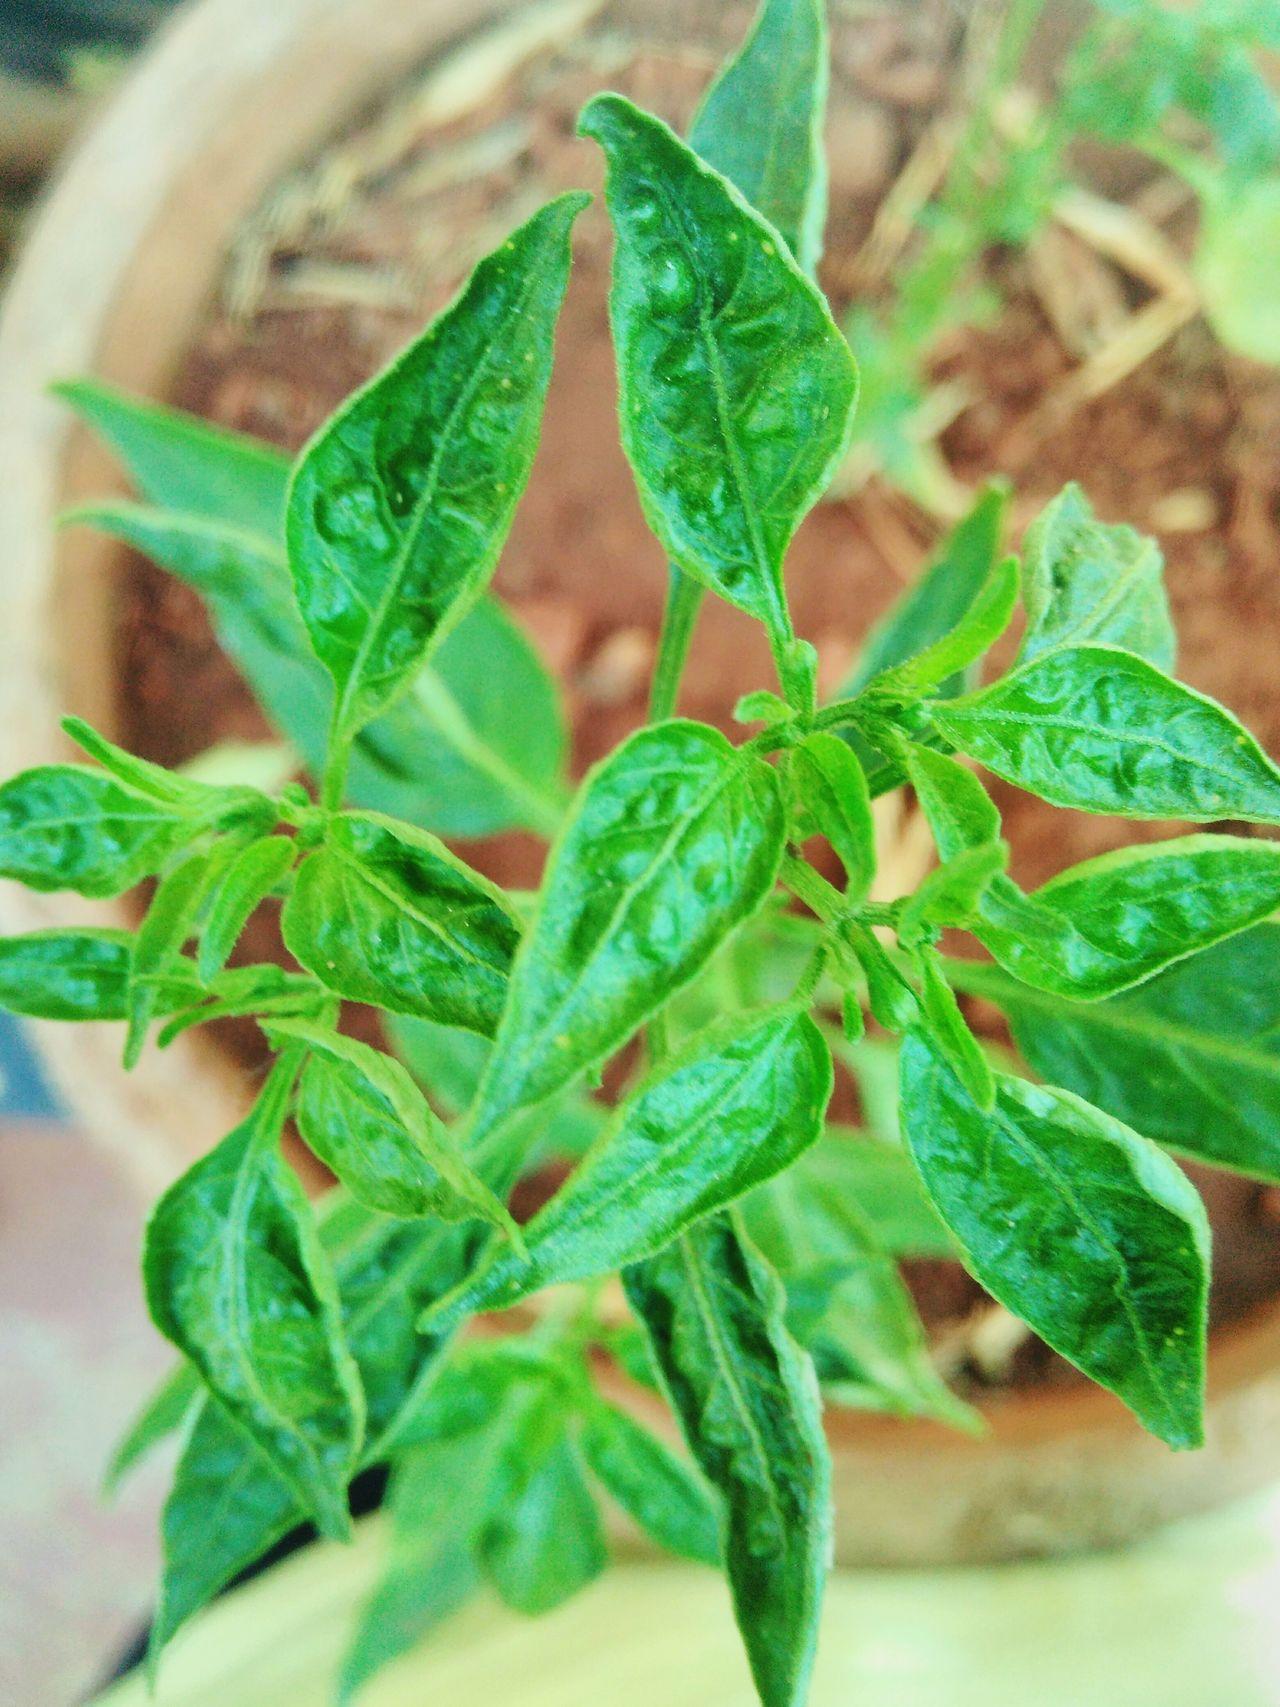 Chilly plant Chilly Plant Leaves Green Color Herb Day HotChilli Potted Plant Leaf Plant No People Growth Close-up Freshness Nature Healthy Eating Food Outdoors